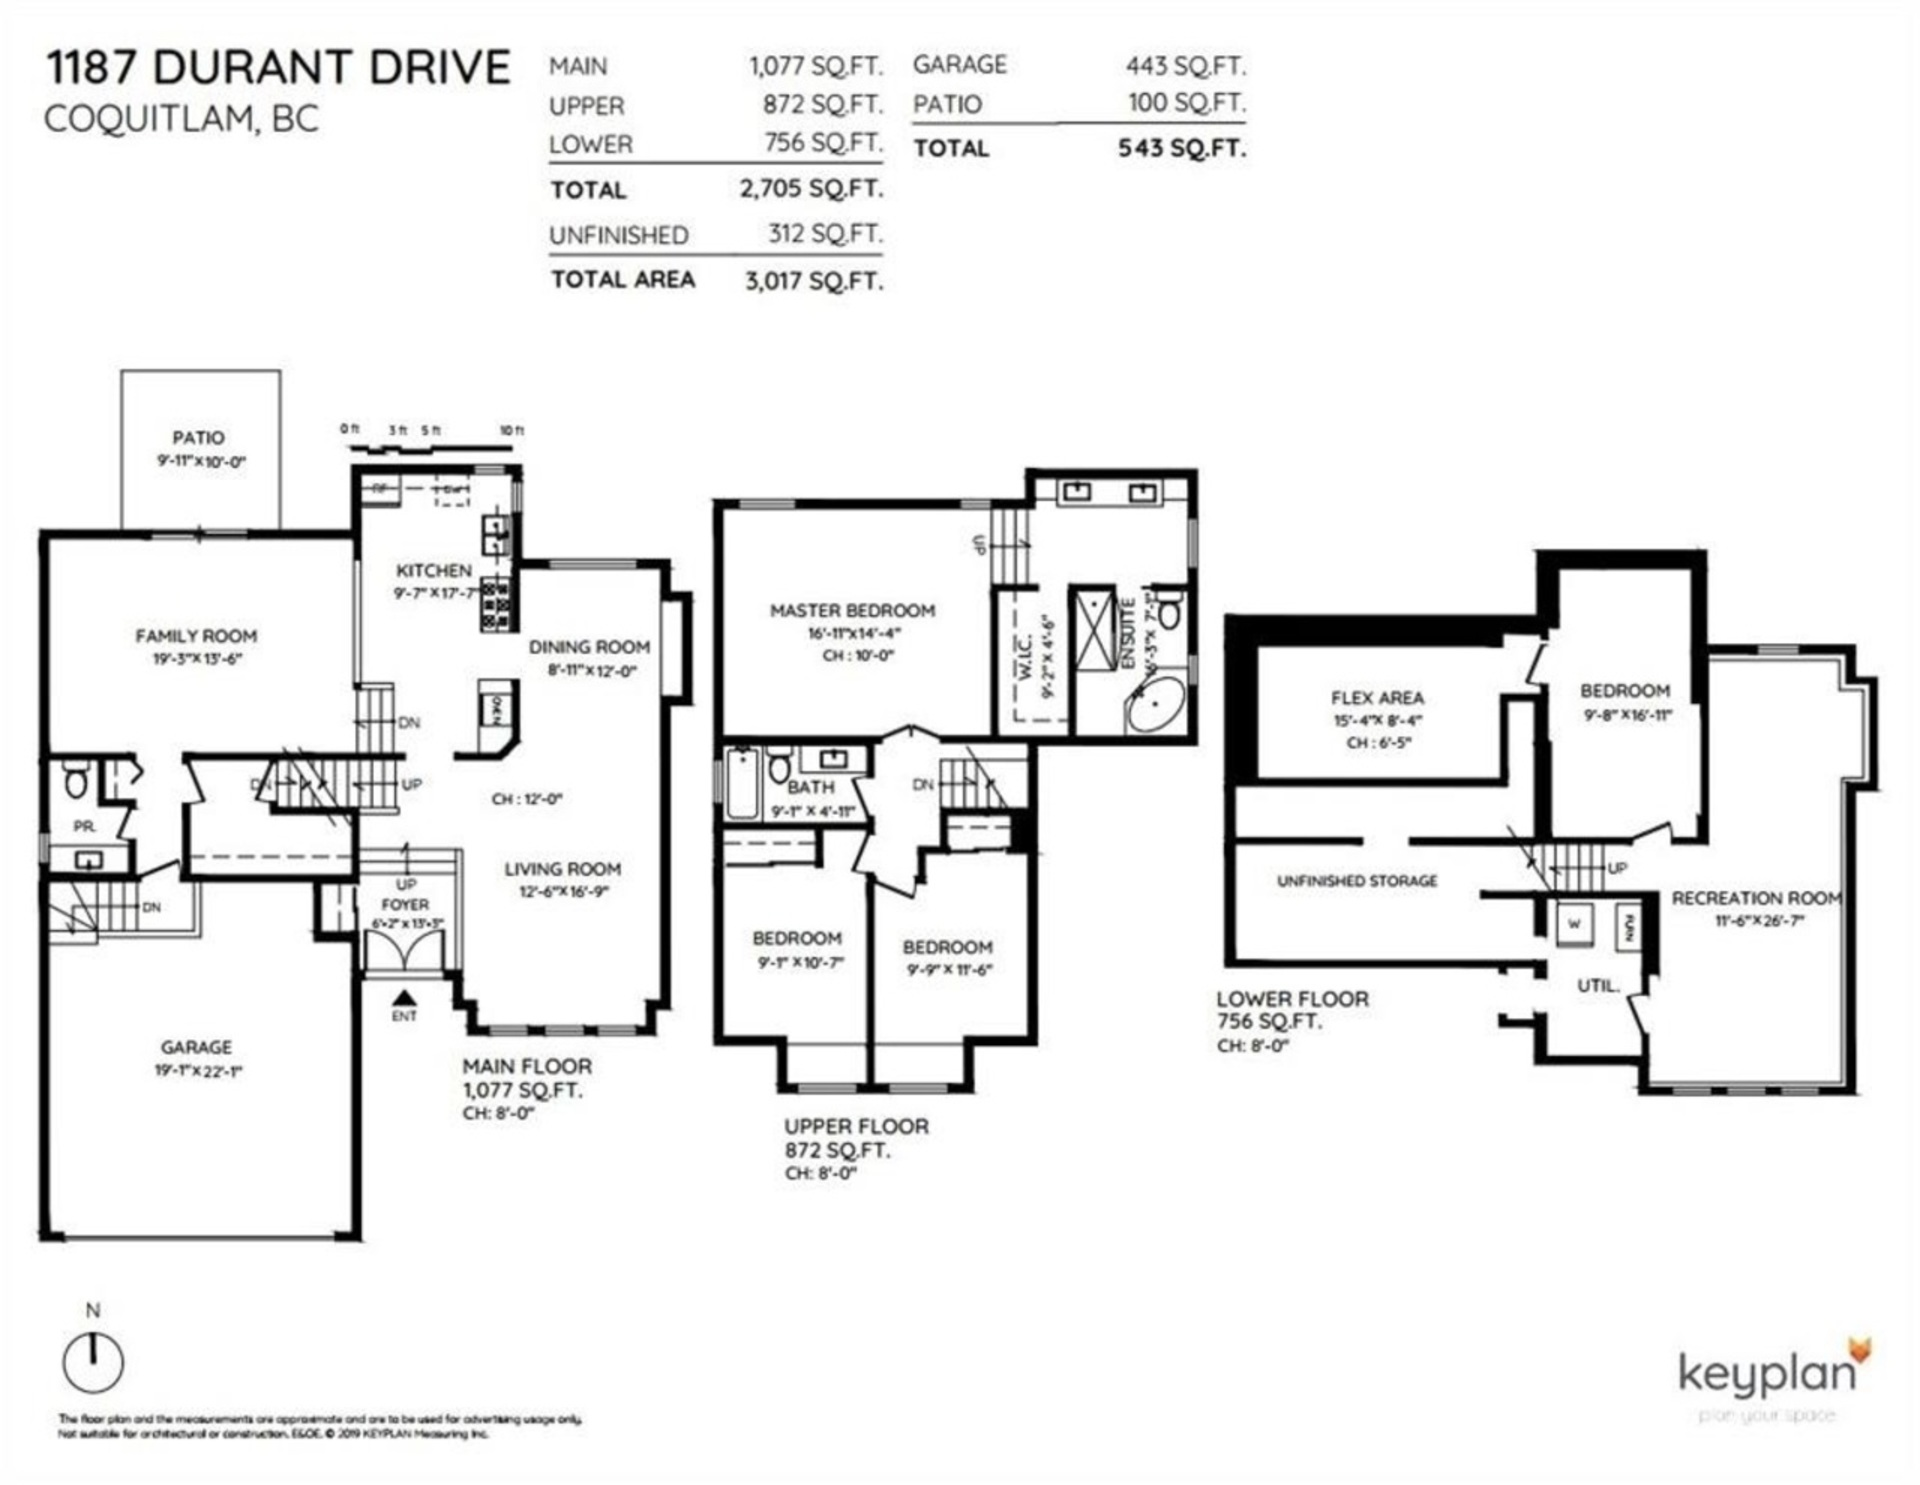 1187-durant-drive-scott-creek-coquitlam-20 at 1187 Durant Drive, Scott Creek, Coquitlam